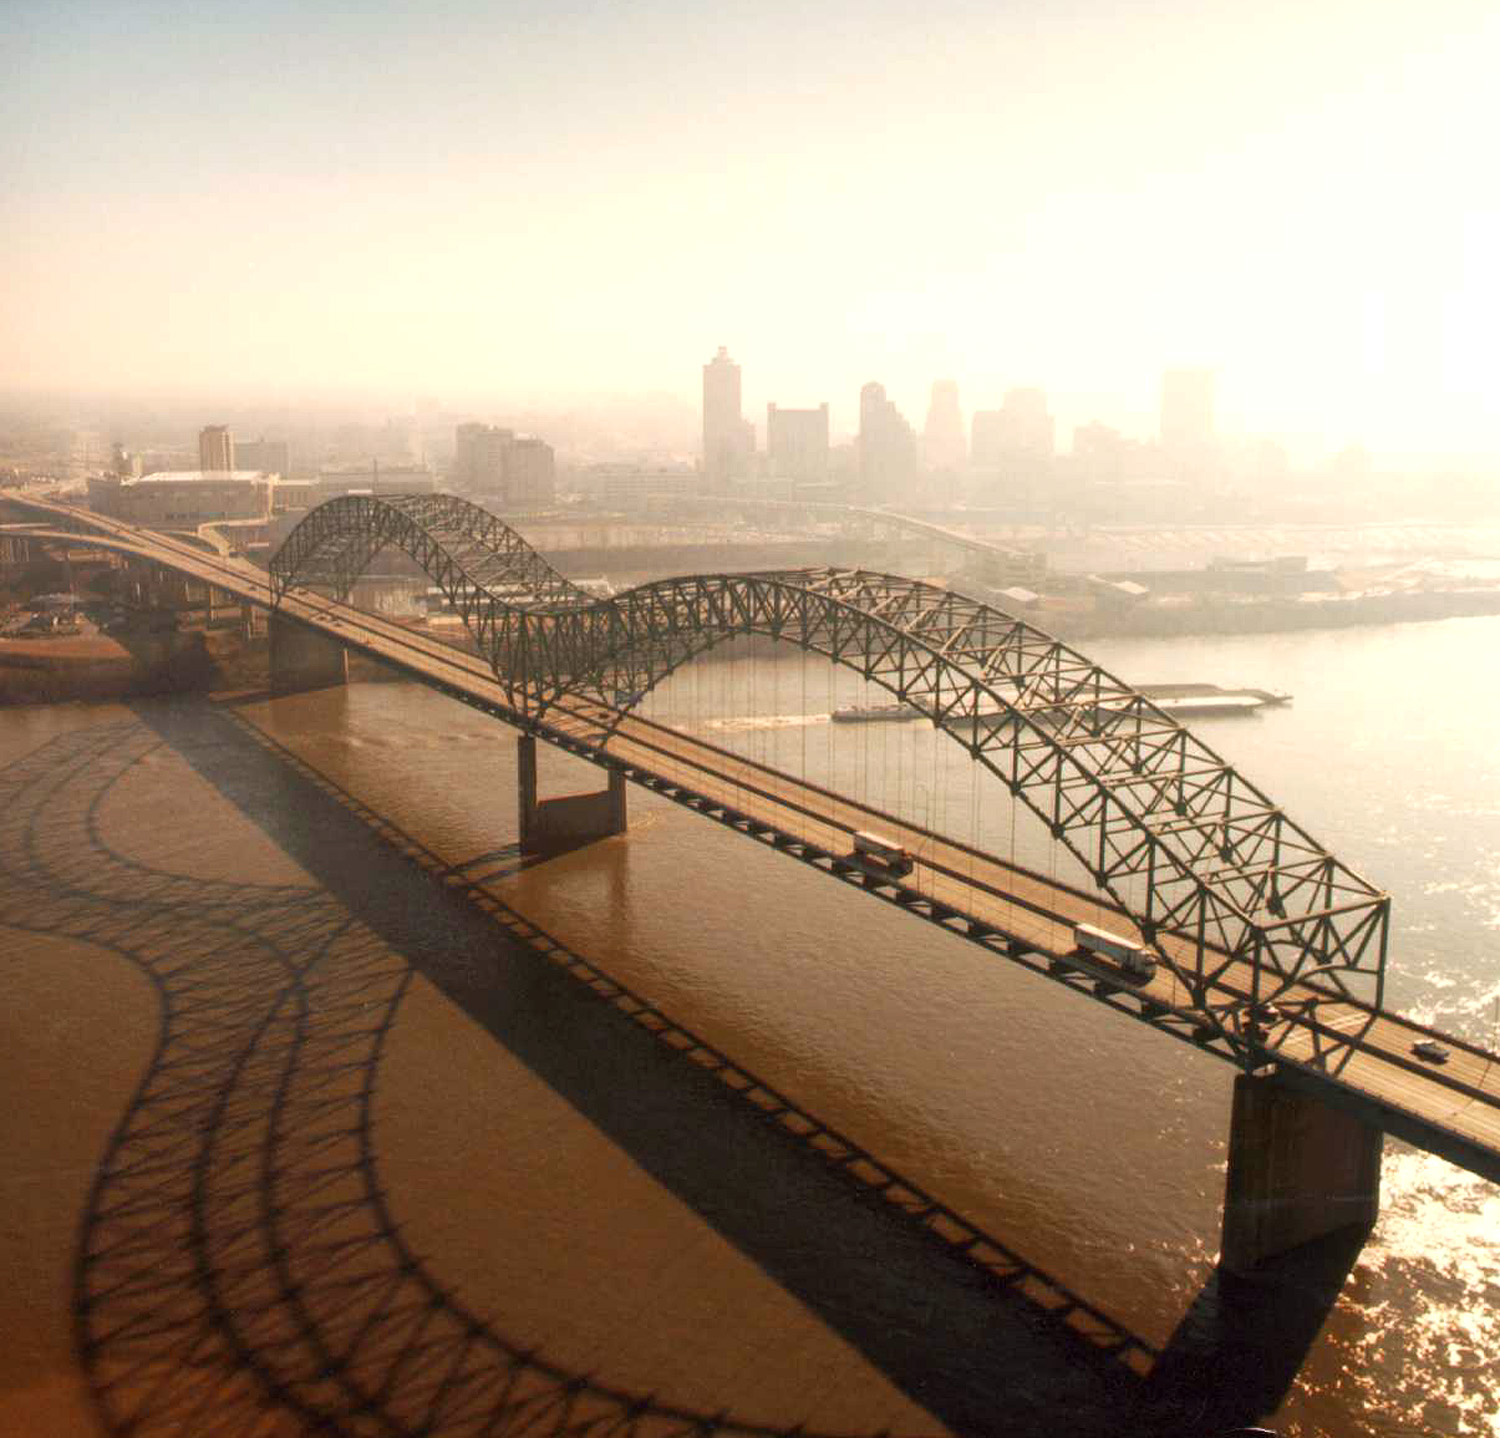 Memphis City Guide: What to Do, See & Eat! · InterExchange